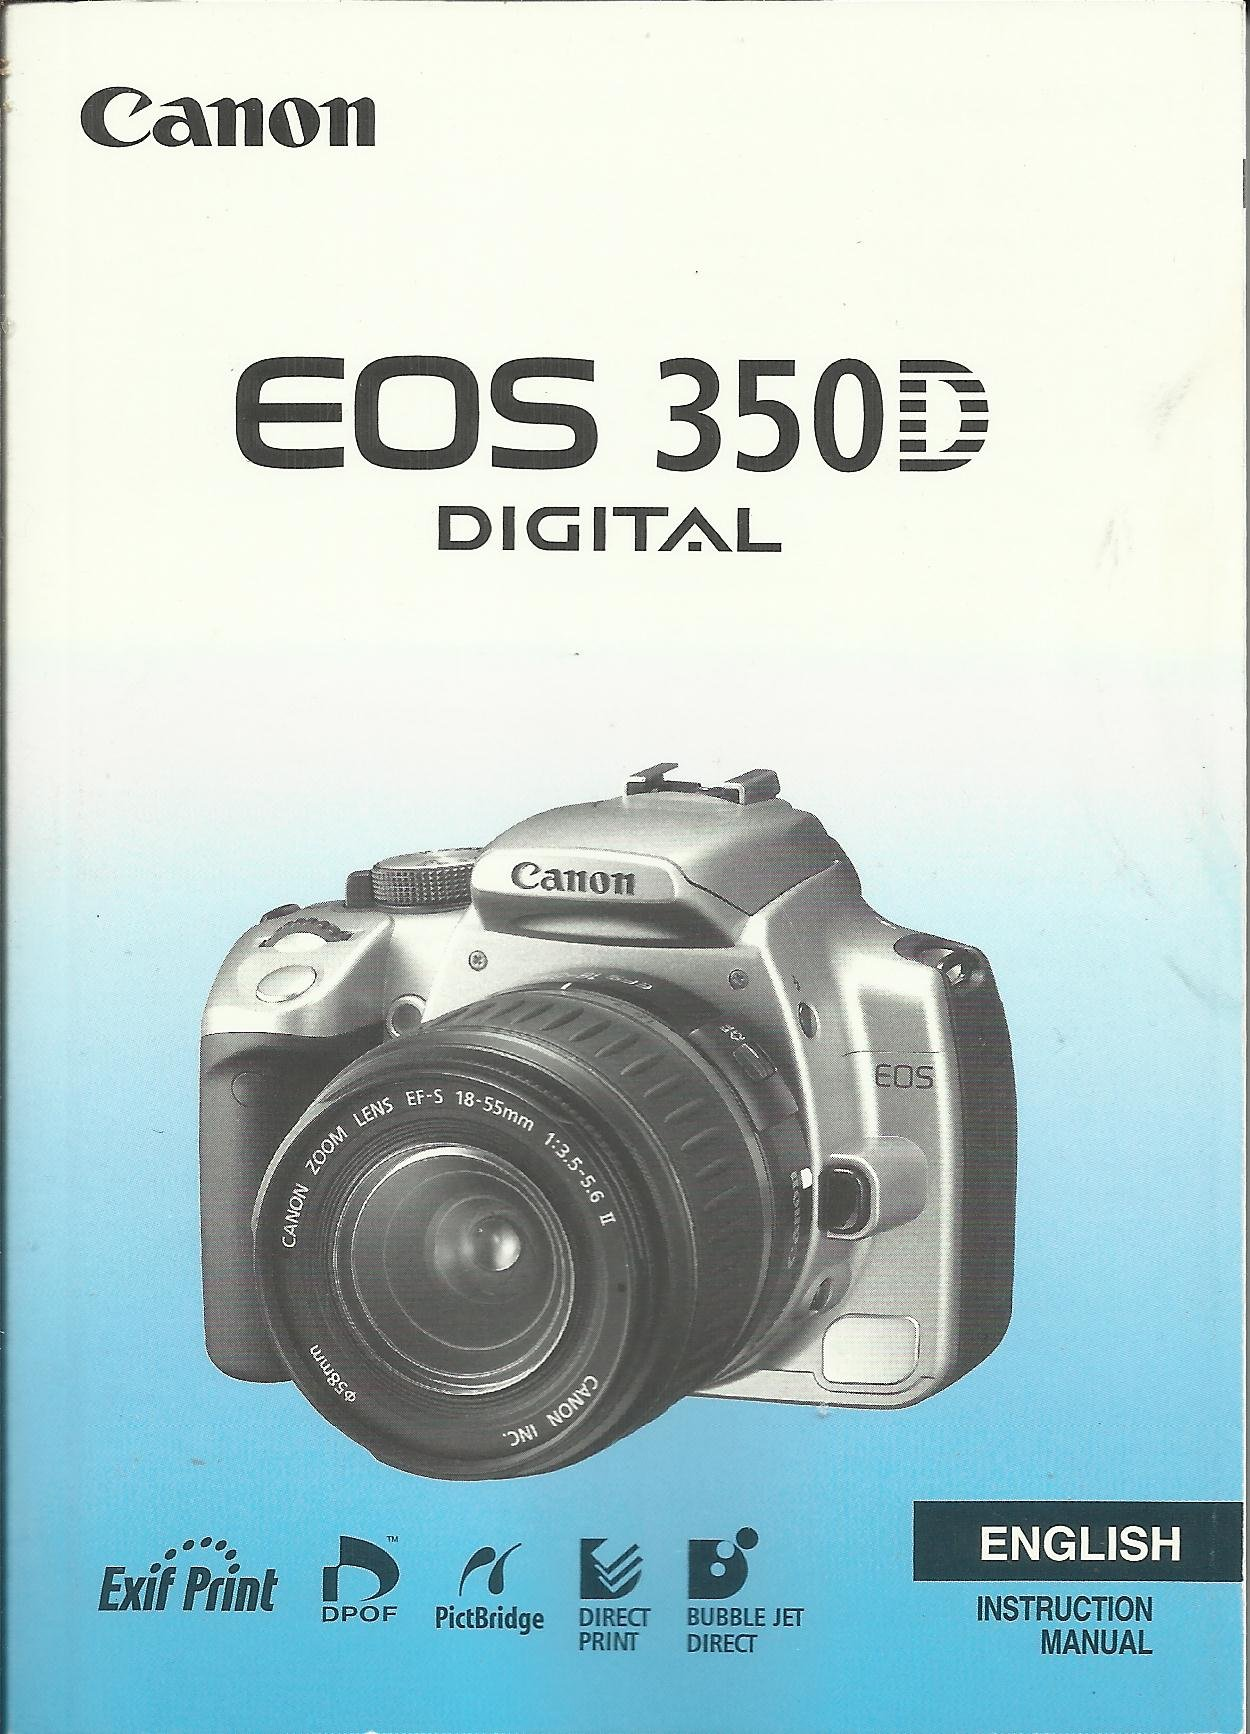 canon eos 350d digital camera instruction manual original amazon rh amazon  co uk Canon EOS 400D Canon EOS 30D